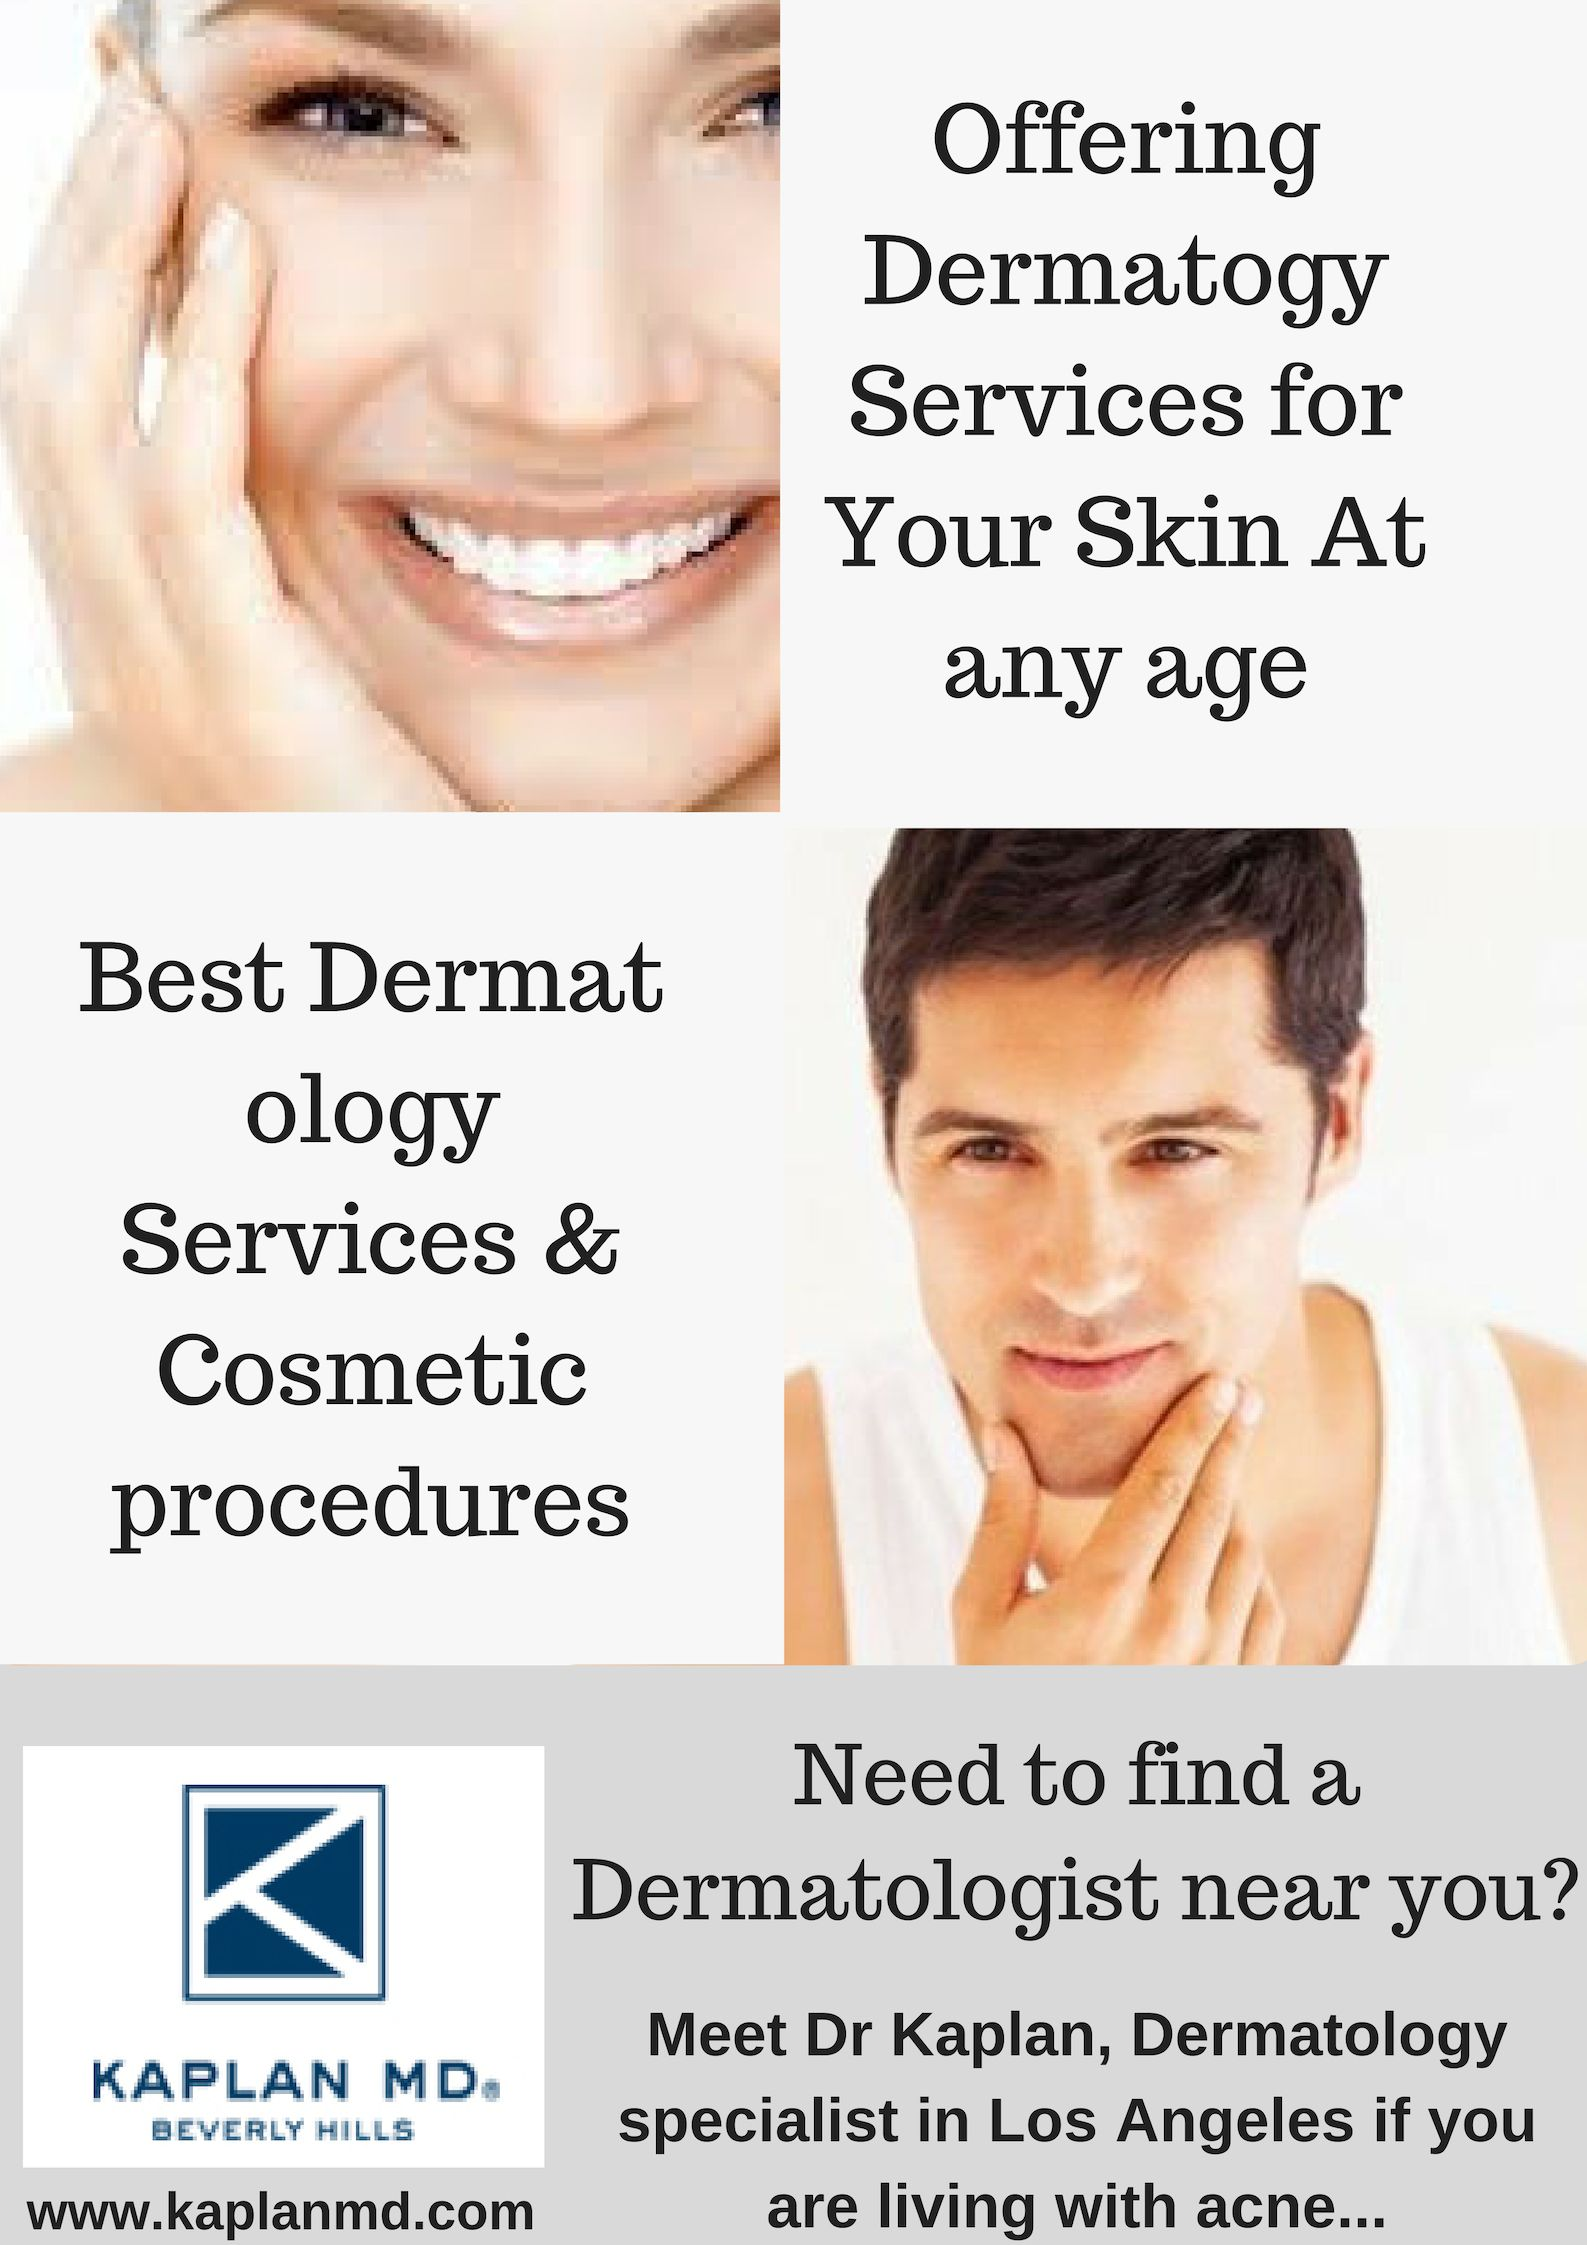 Need to find a #dermatology specialist near you? Meet Dr Kaplan a